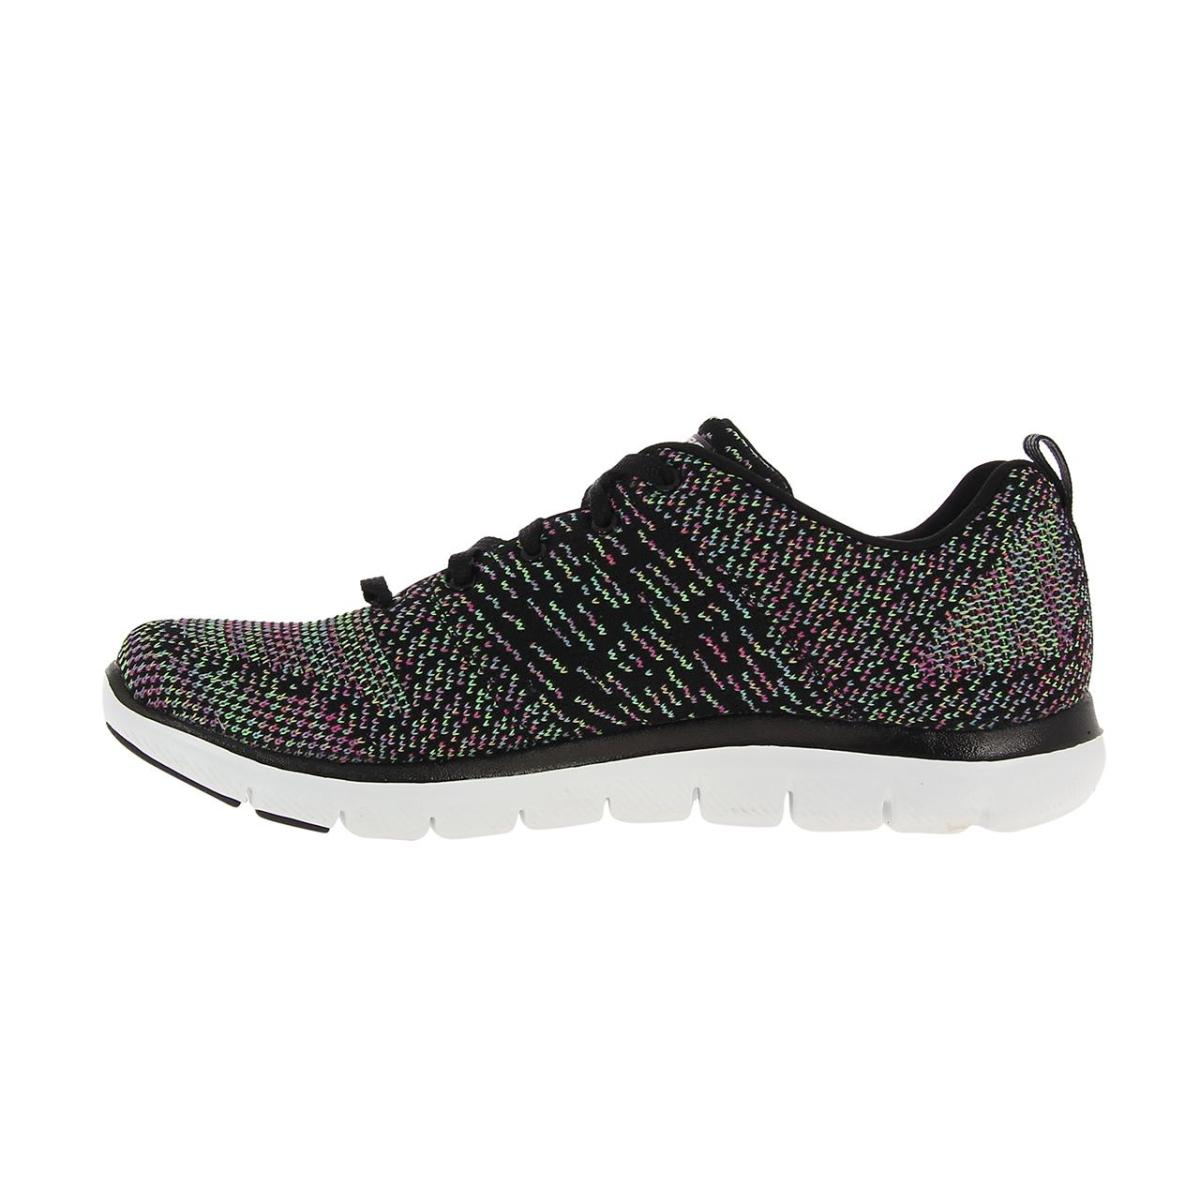 SKECHERS MUJER 12756 BKMT TEXTIL ZAPATOS in Walking Shoes